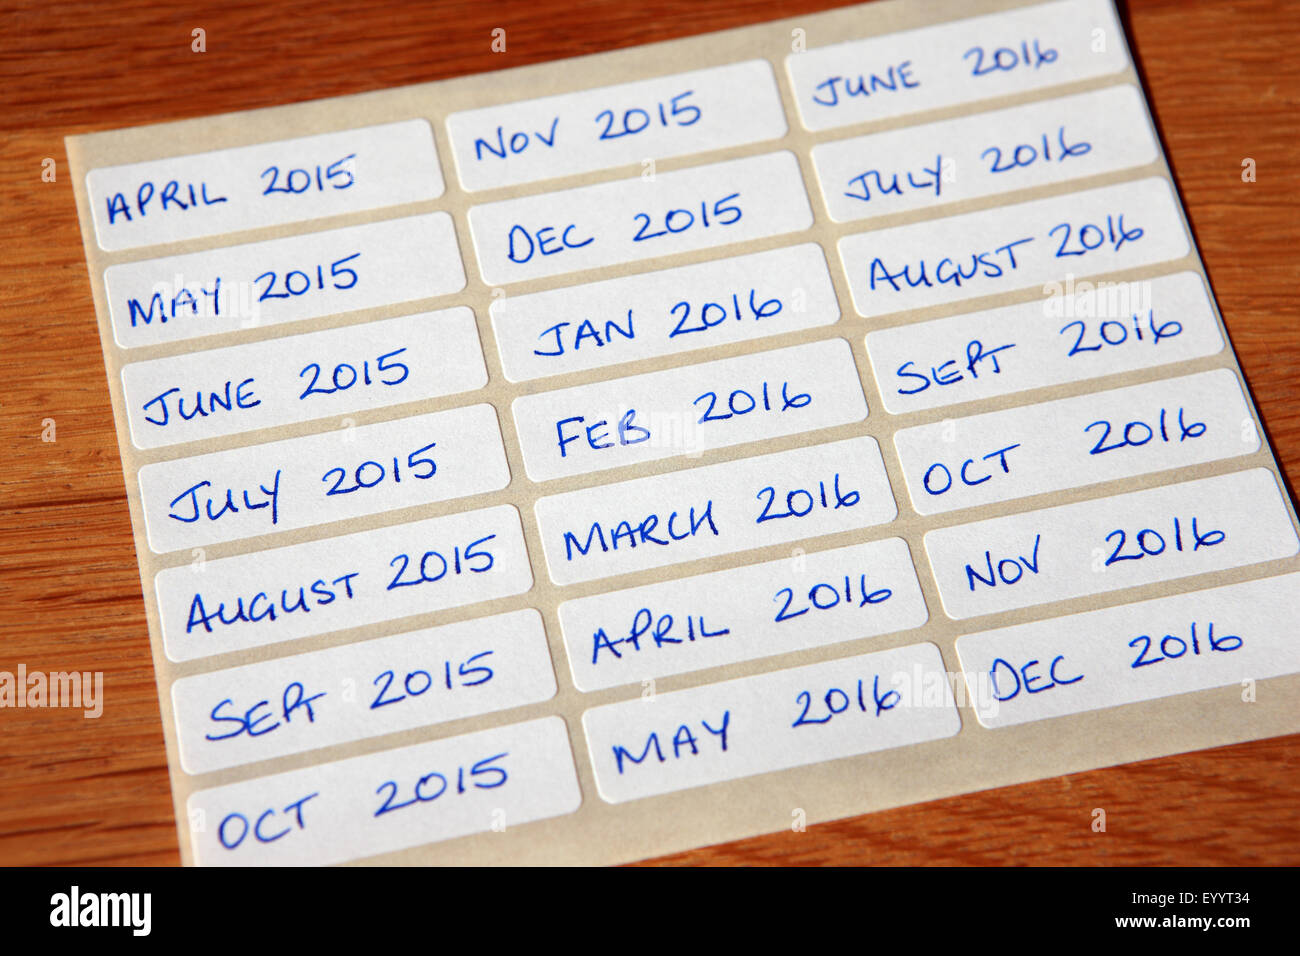 Hand written sticky labels April 2015 - December 2016 - Stock Image